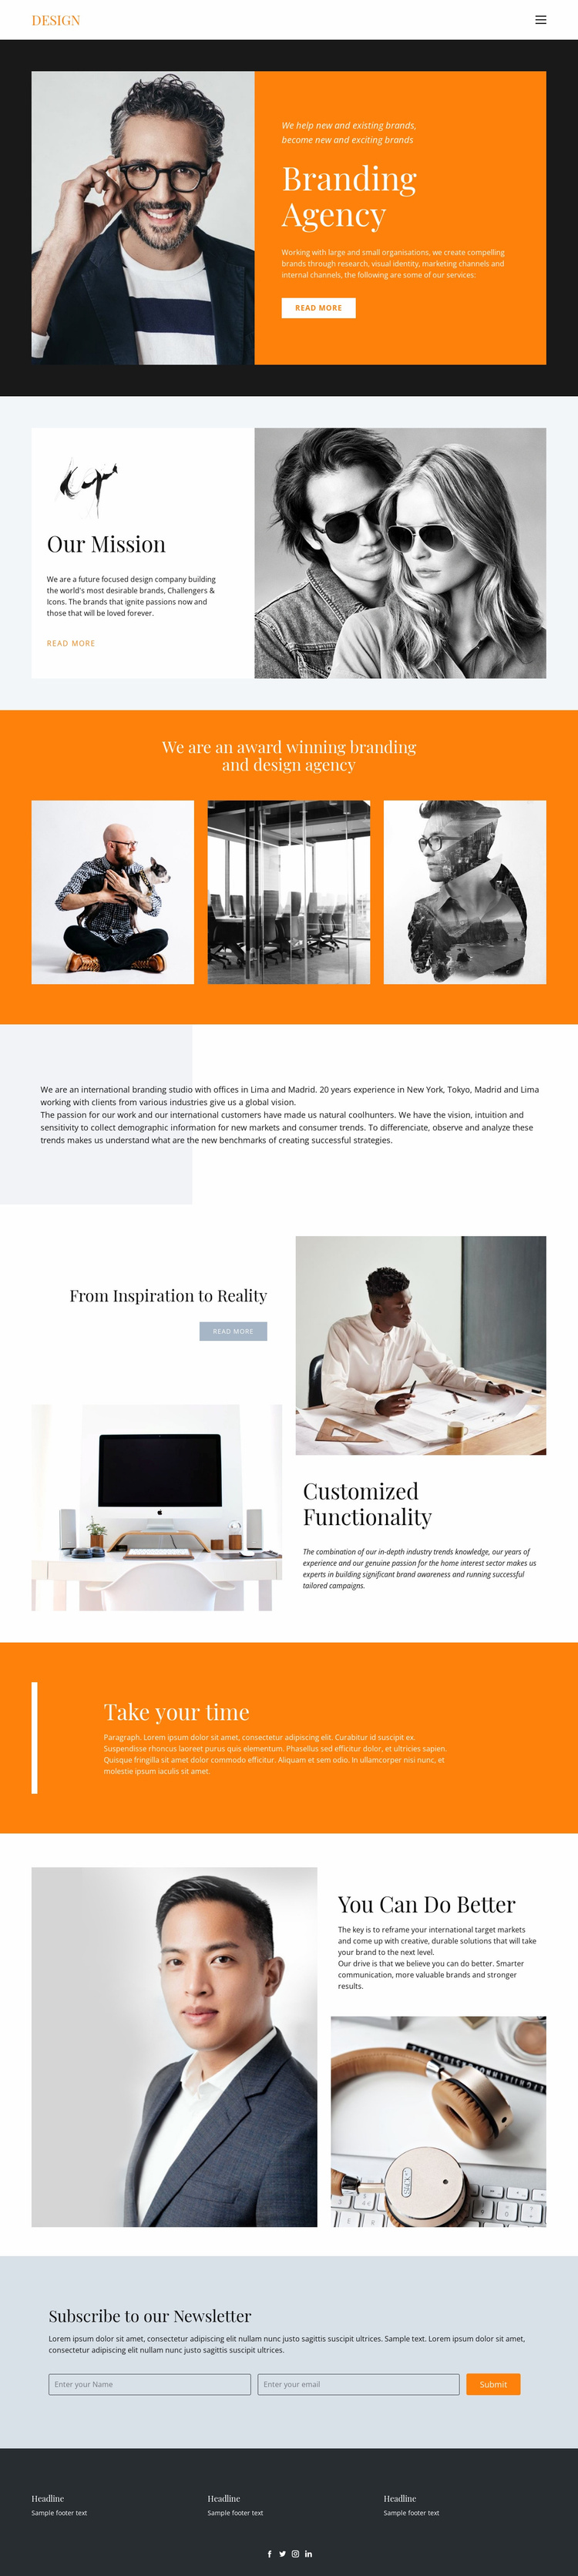 Desired results in business Website Template